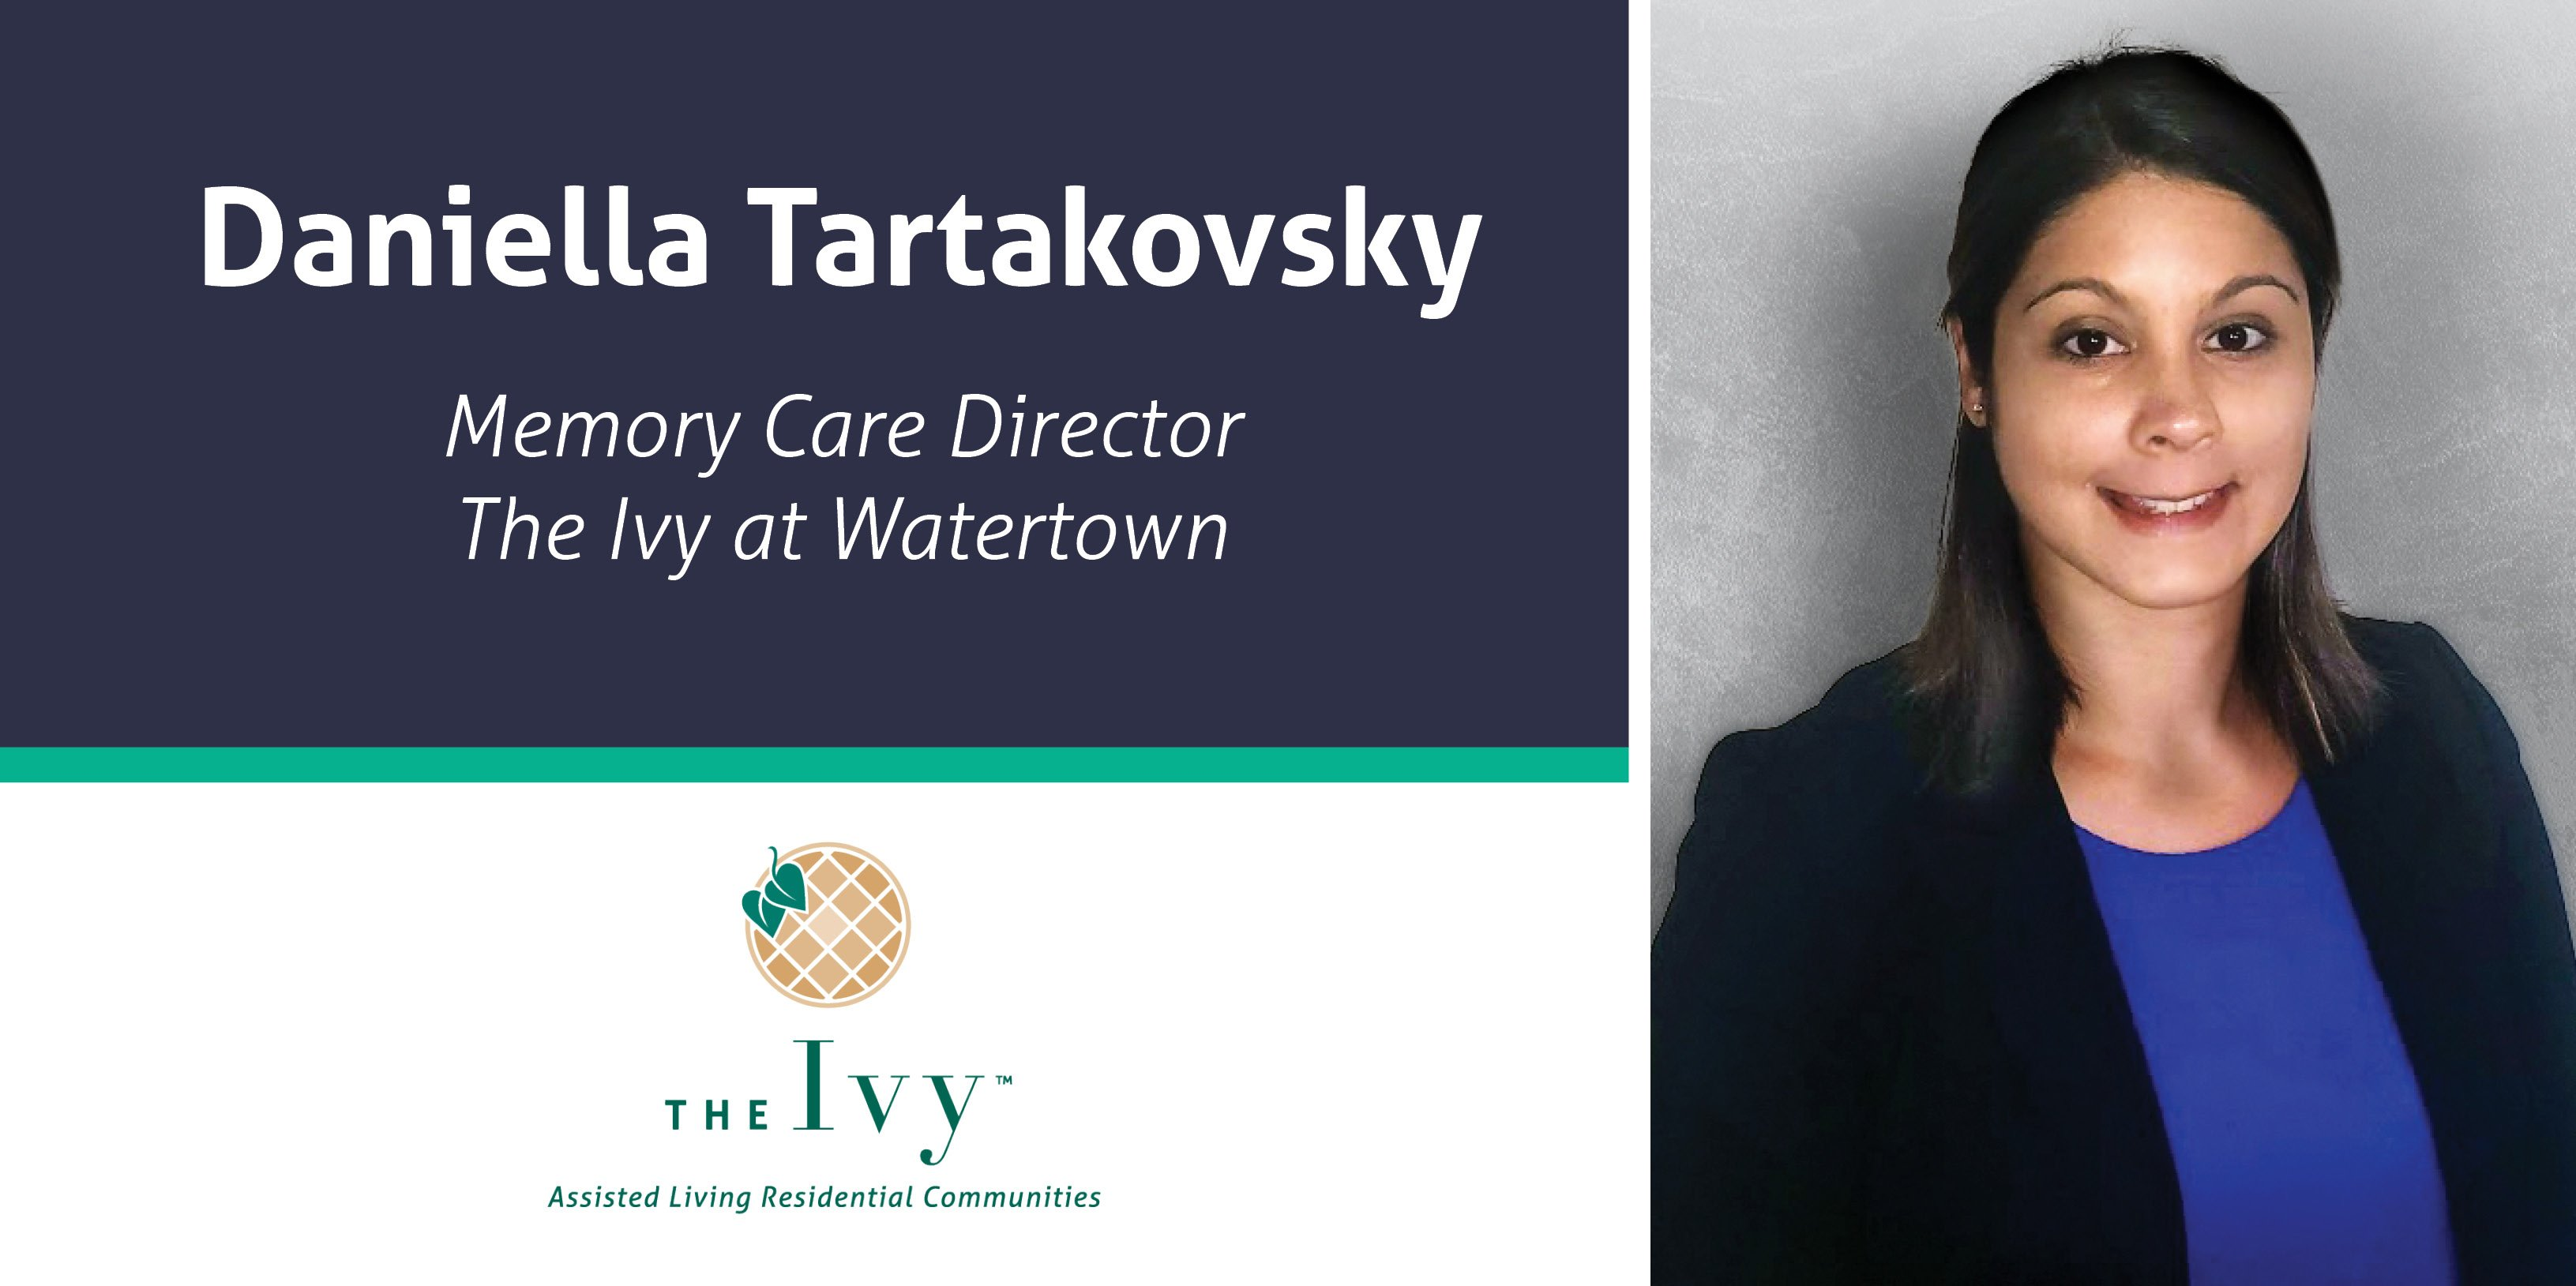 Meet Daniella Tartakovsky Memory Care Director of The Ivy at Watertown